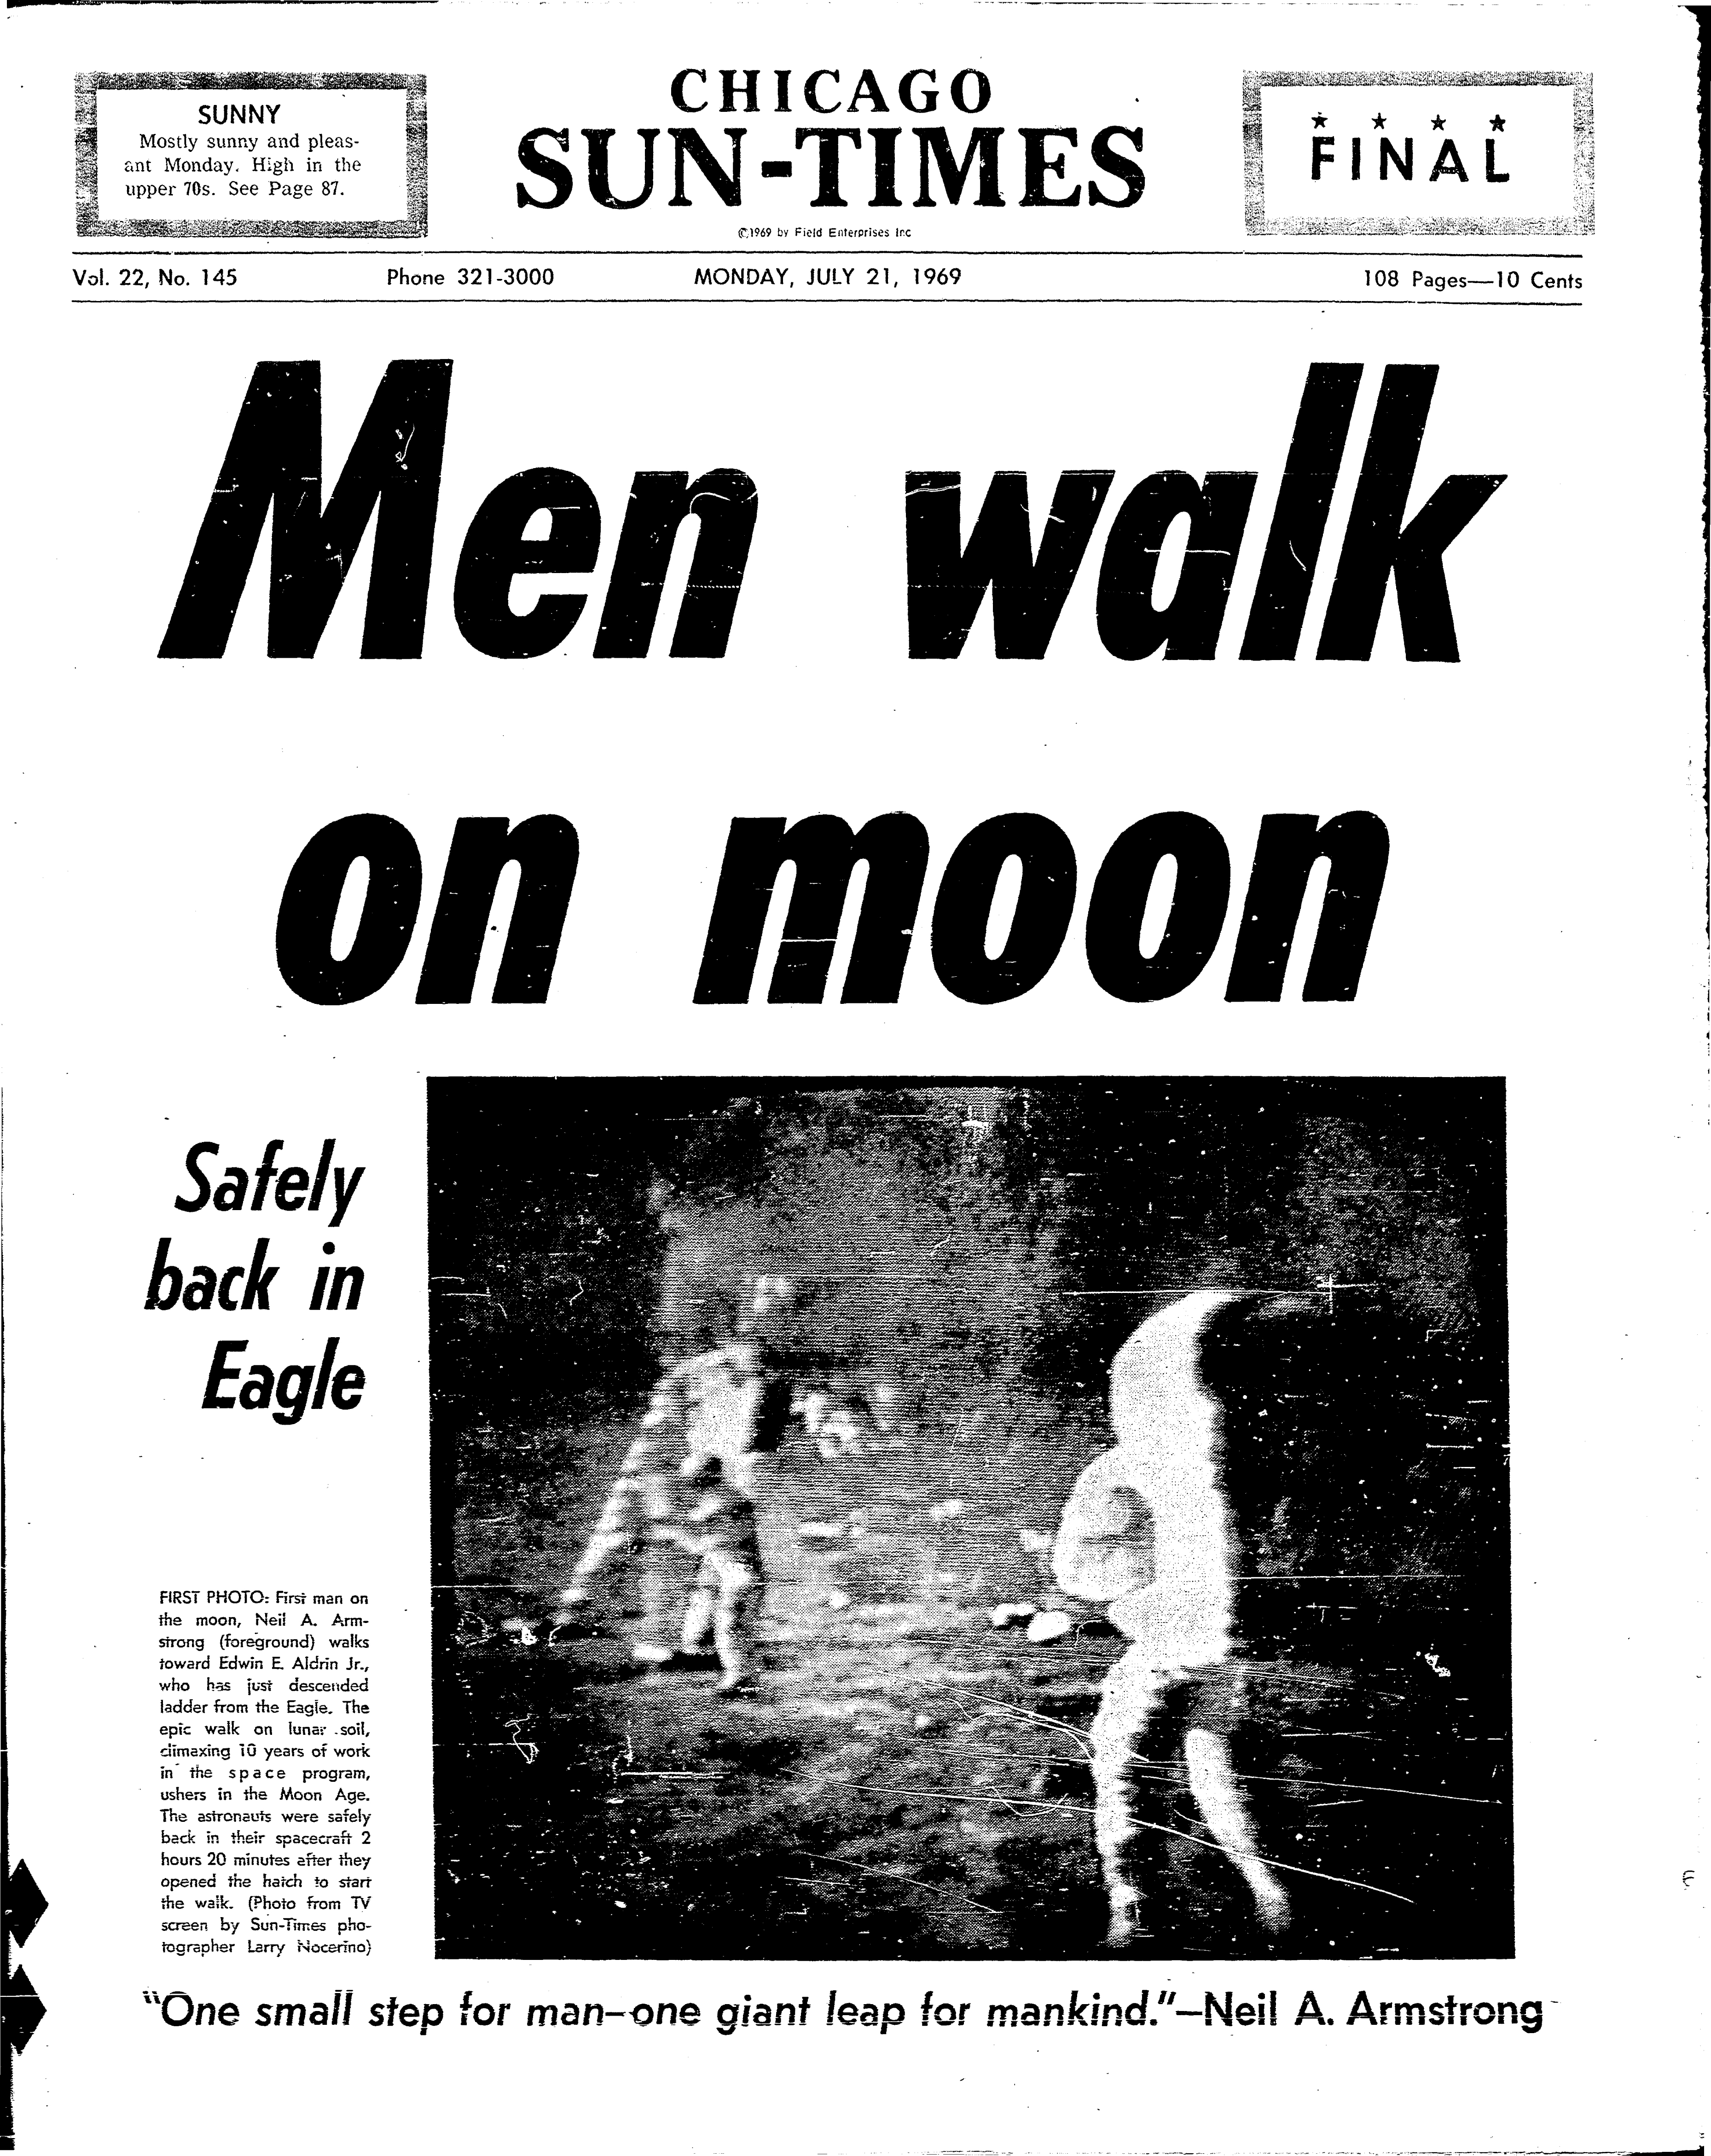 The Sun-Times' front page on the historic first moonwalk 50 years ago.